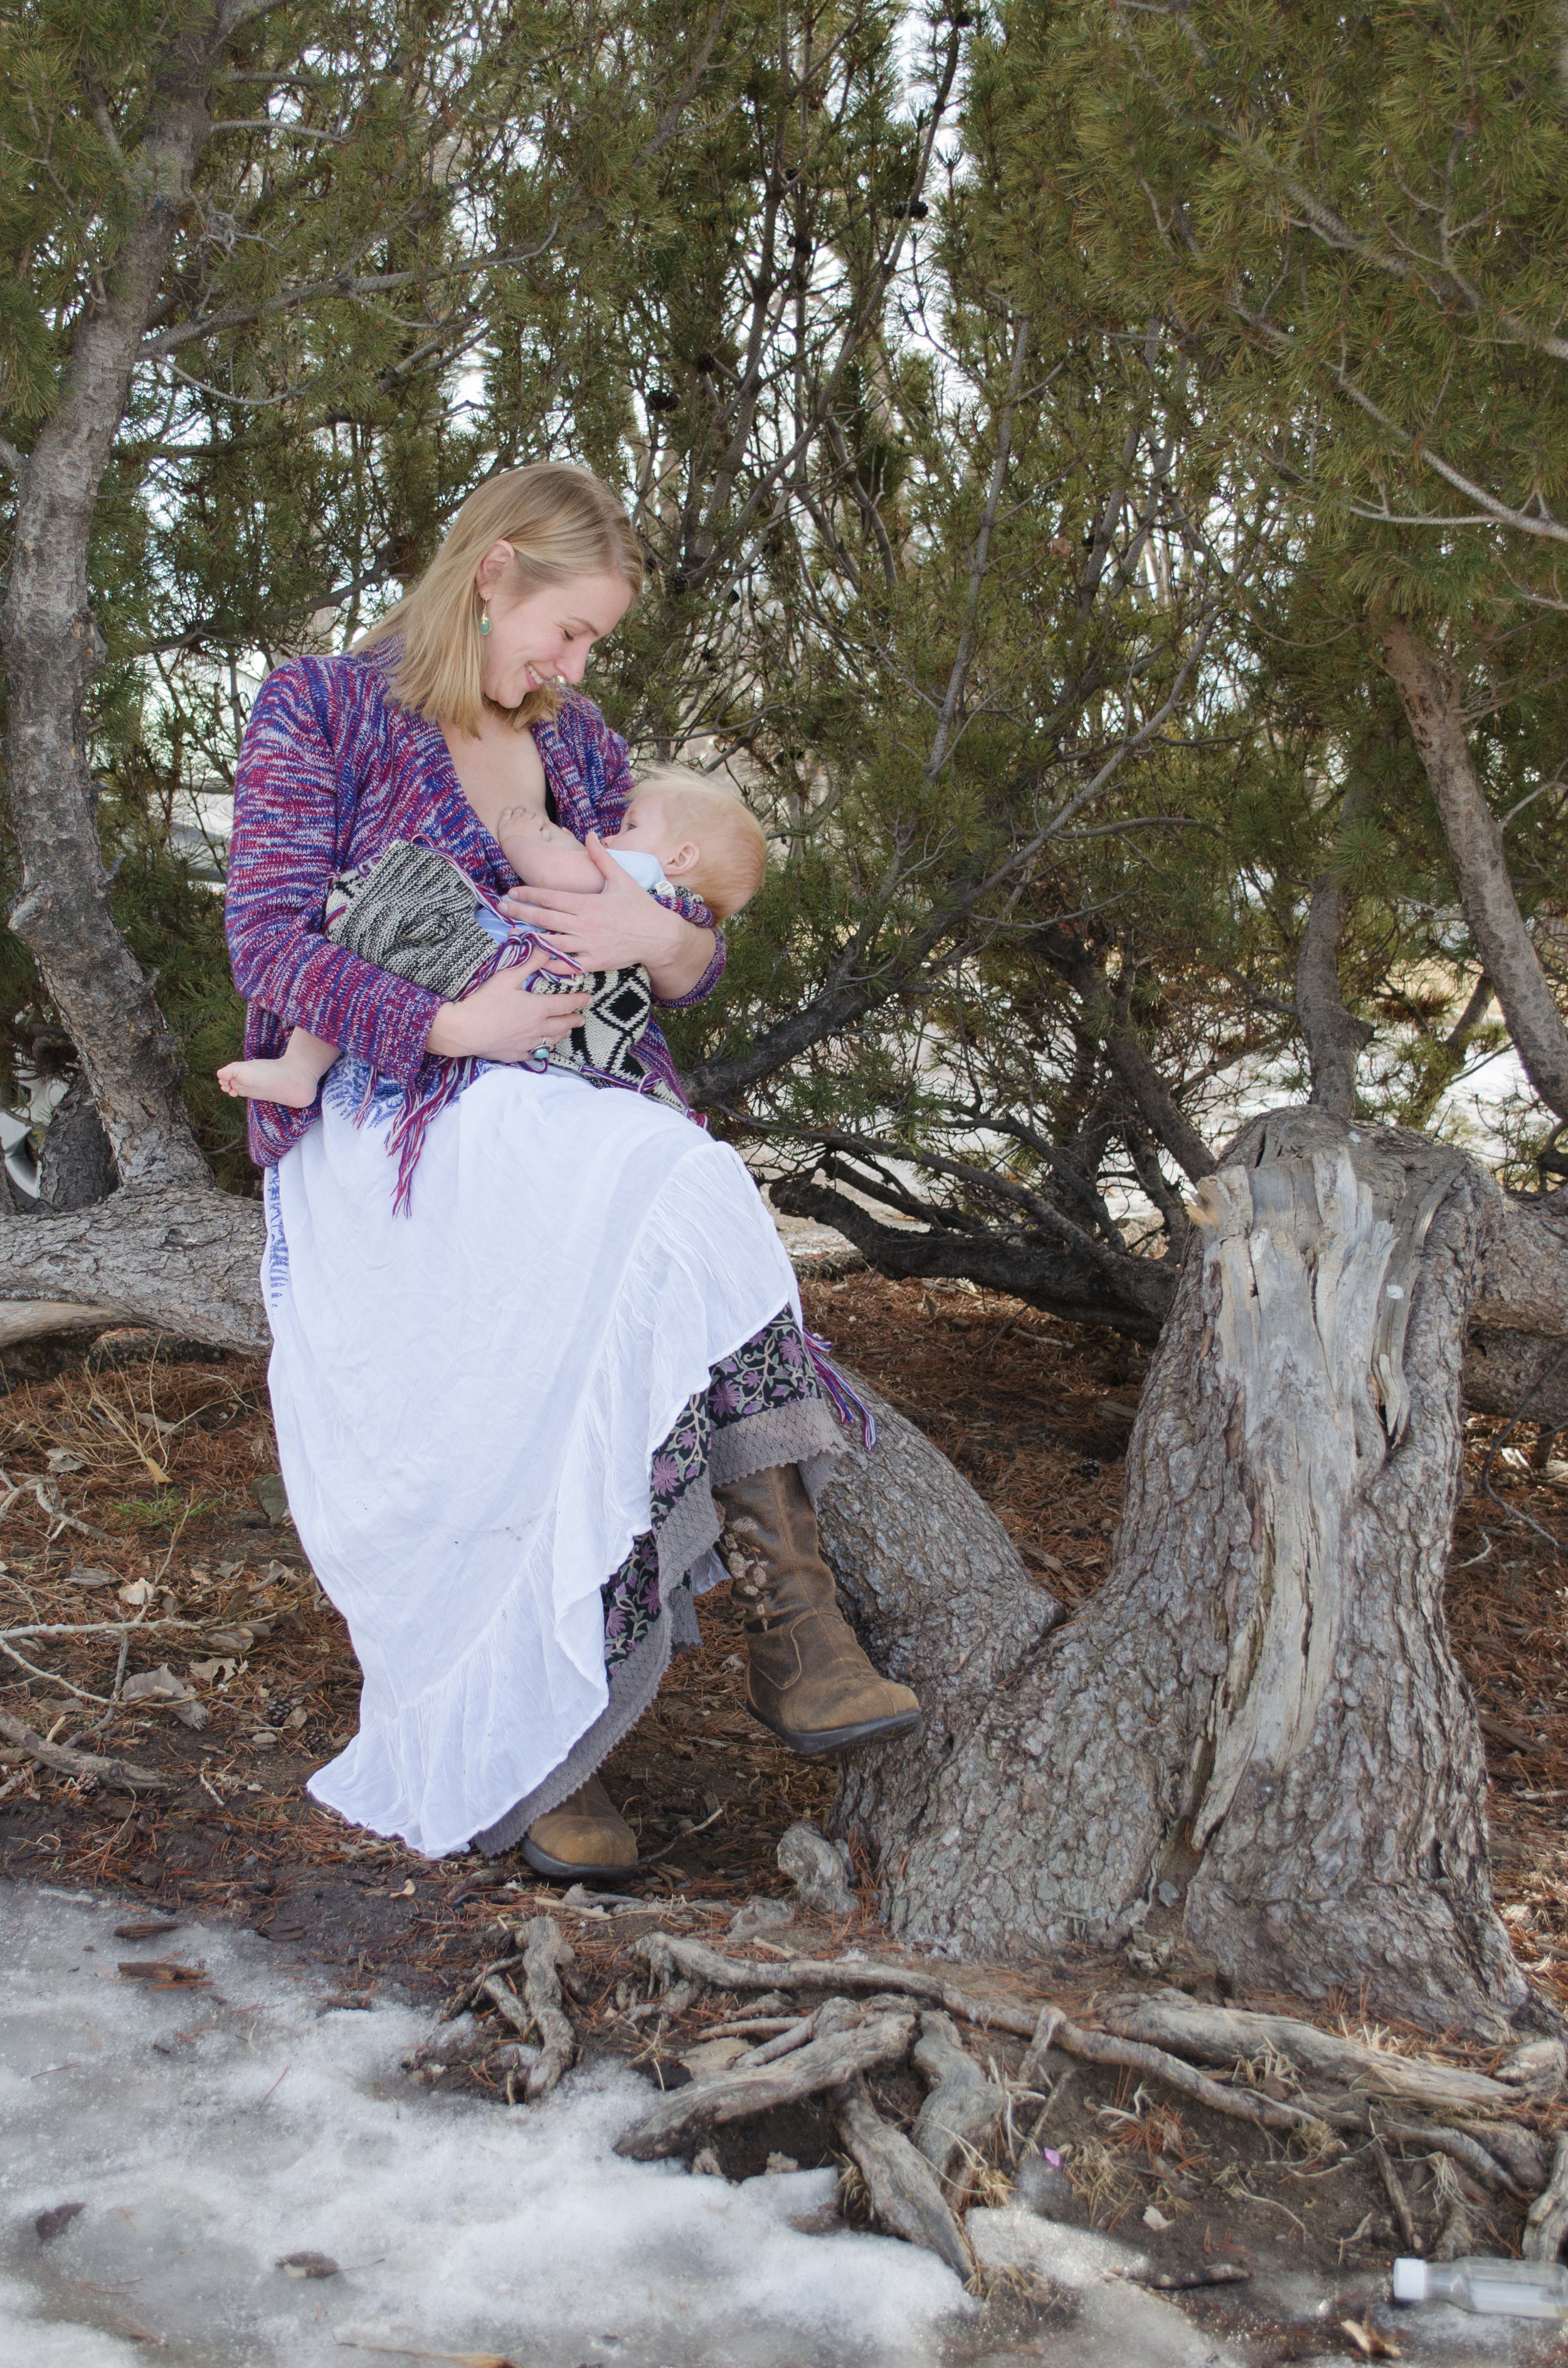 Breastfeeding in a park, perfect moment